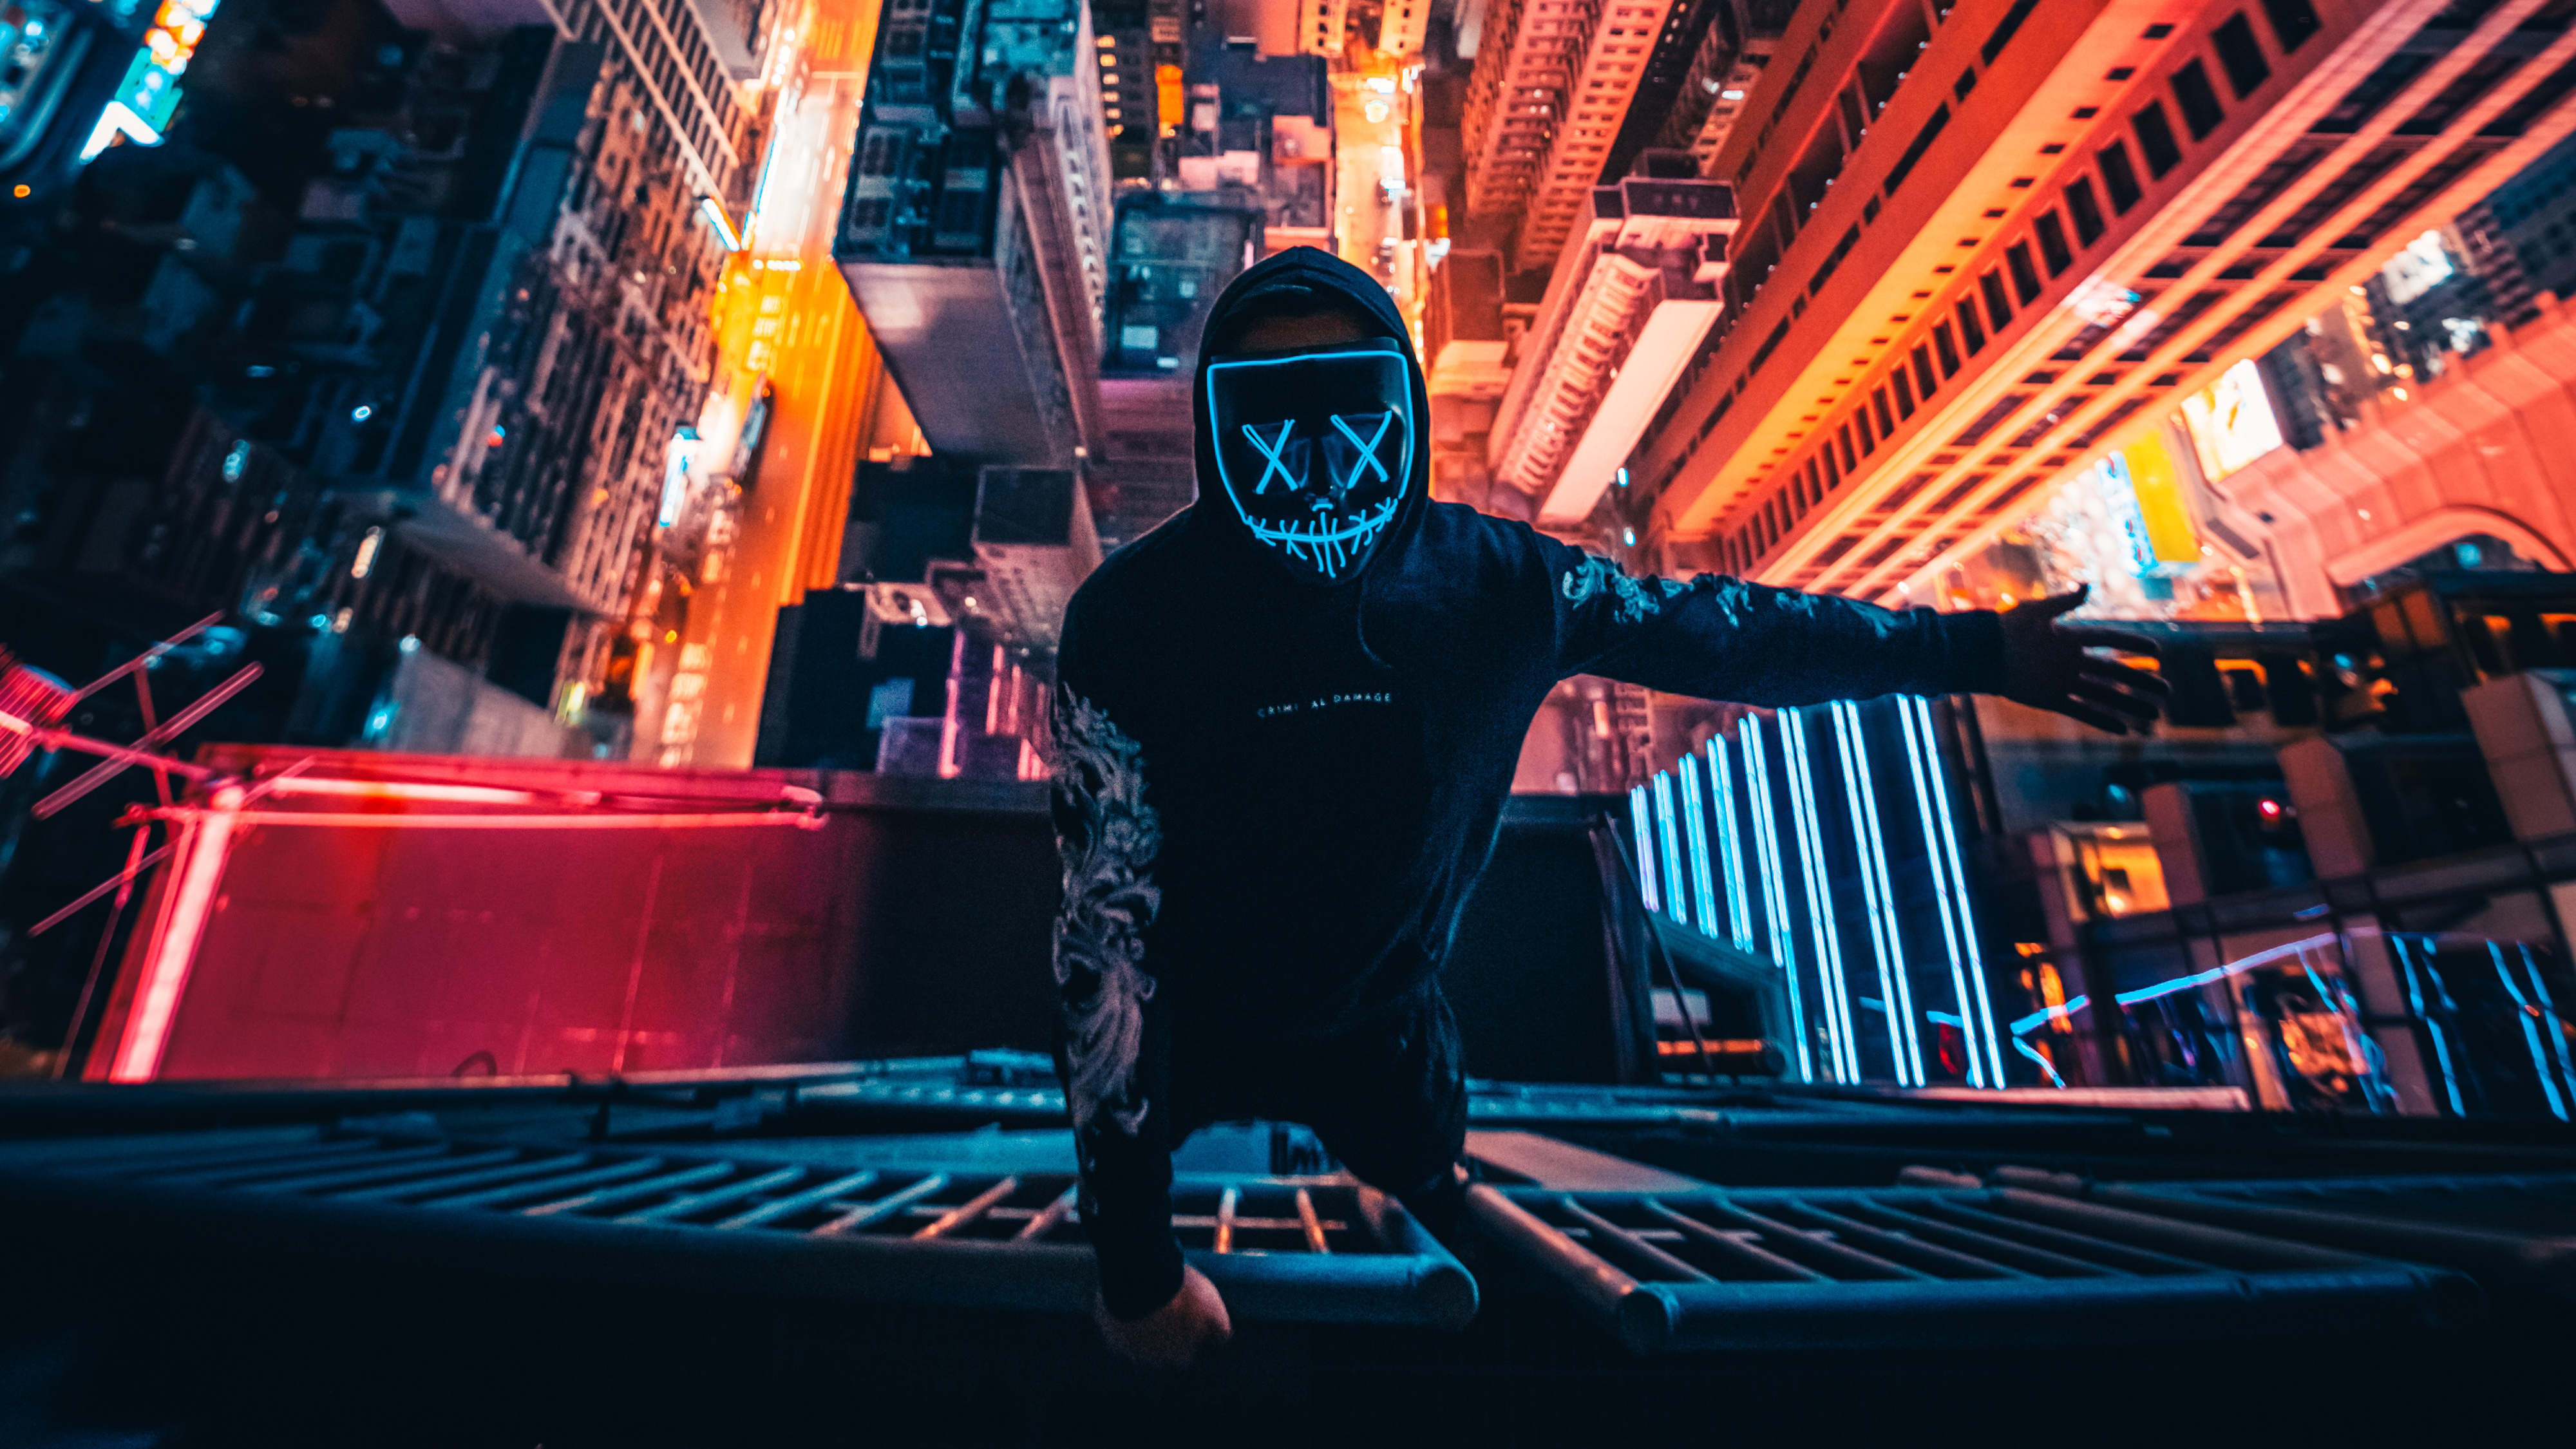 Android 3d Wallpaper Effect Neon Mask Guy Climbing Building 4k Hd Photography 4k